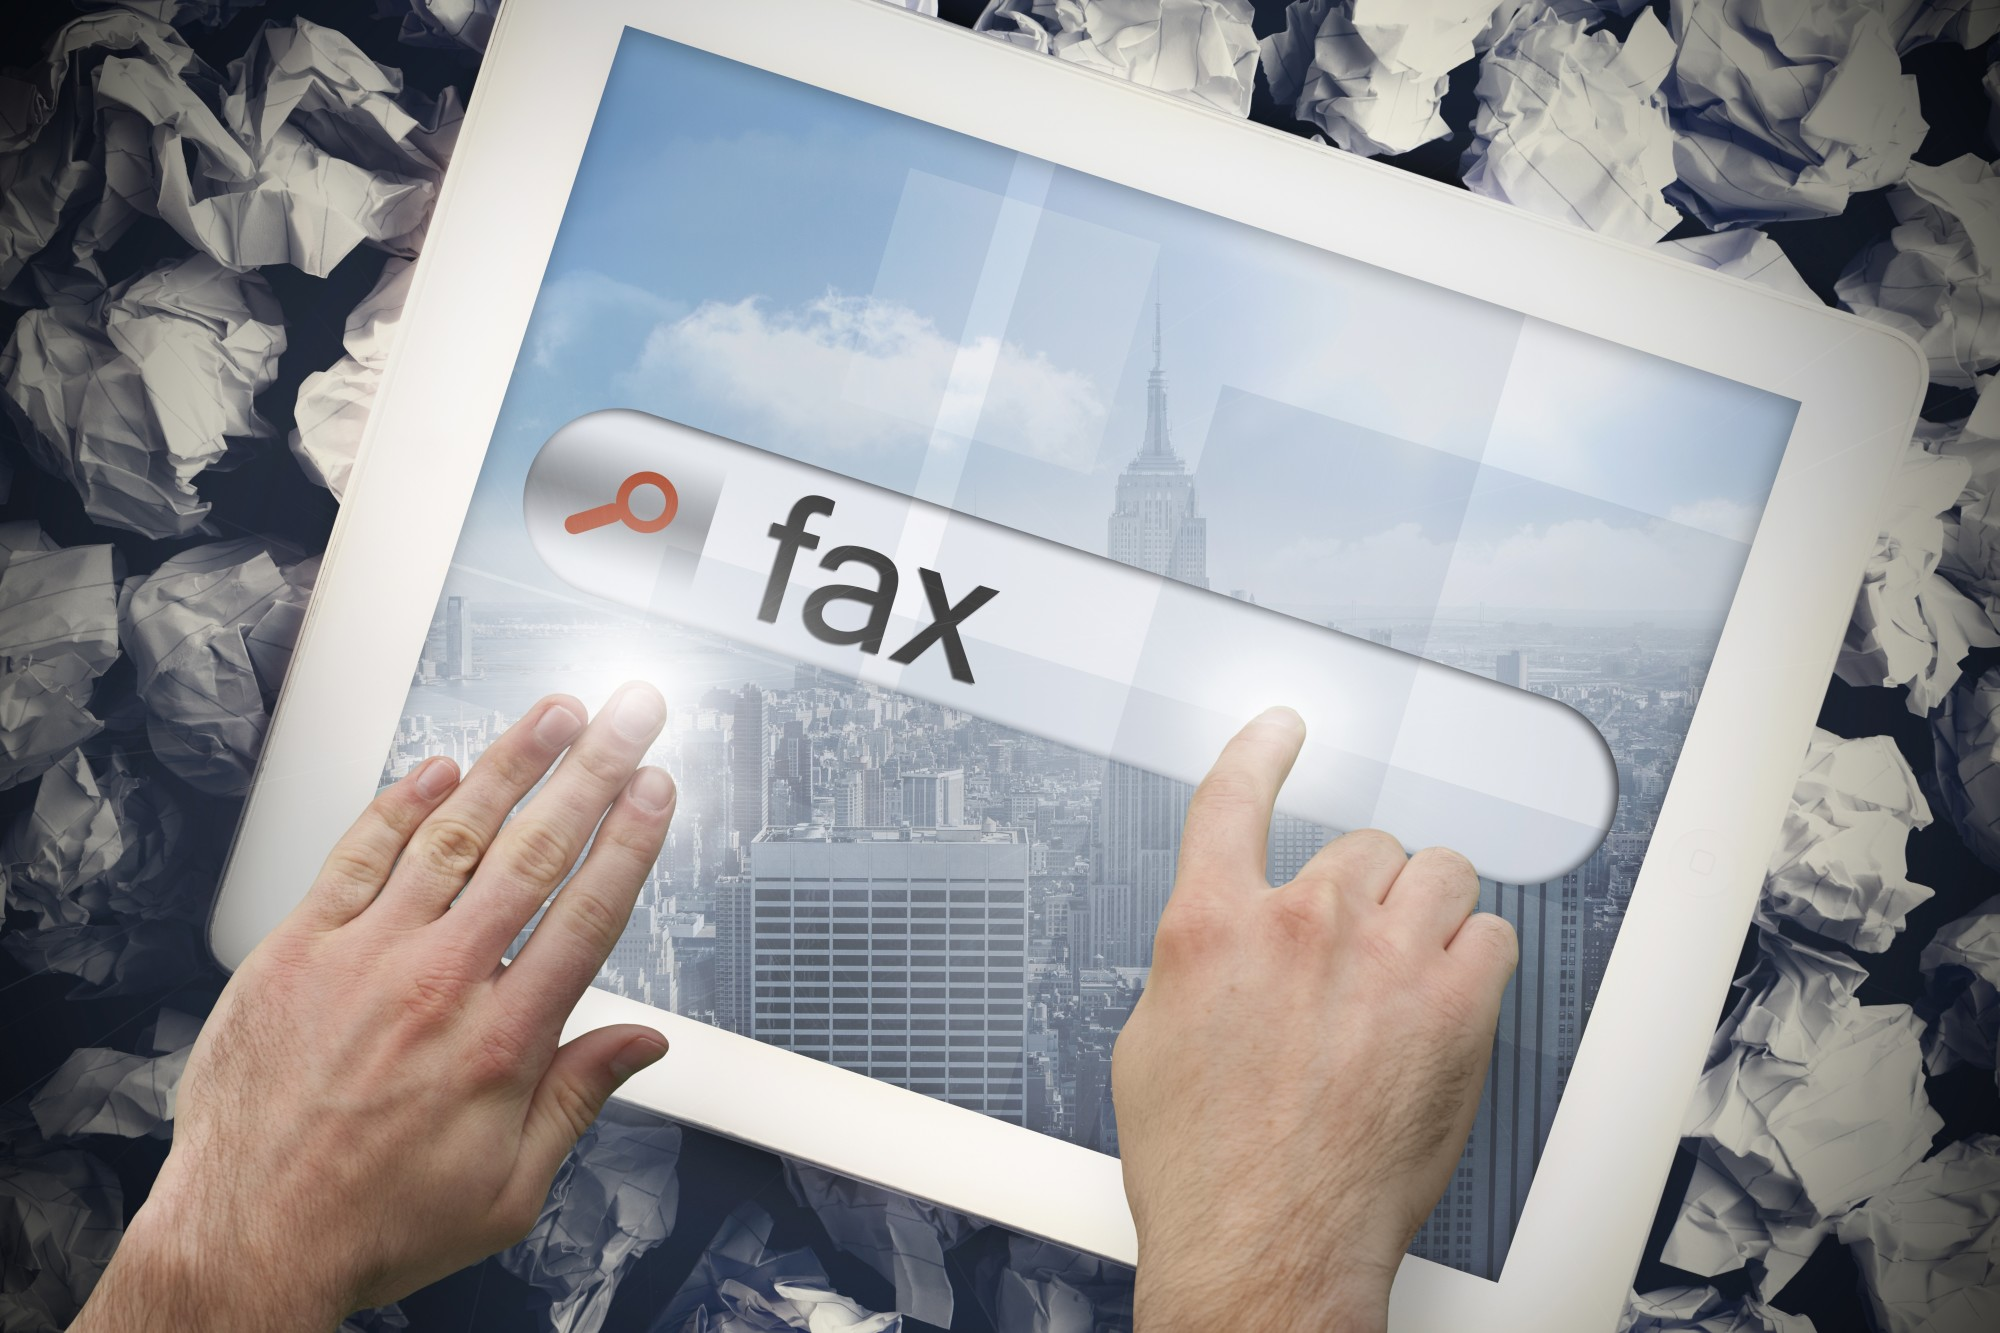 fax on a tablet computer